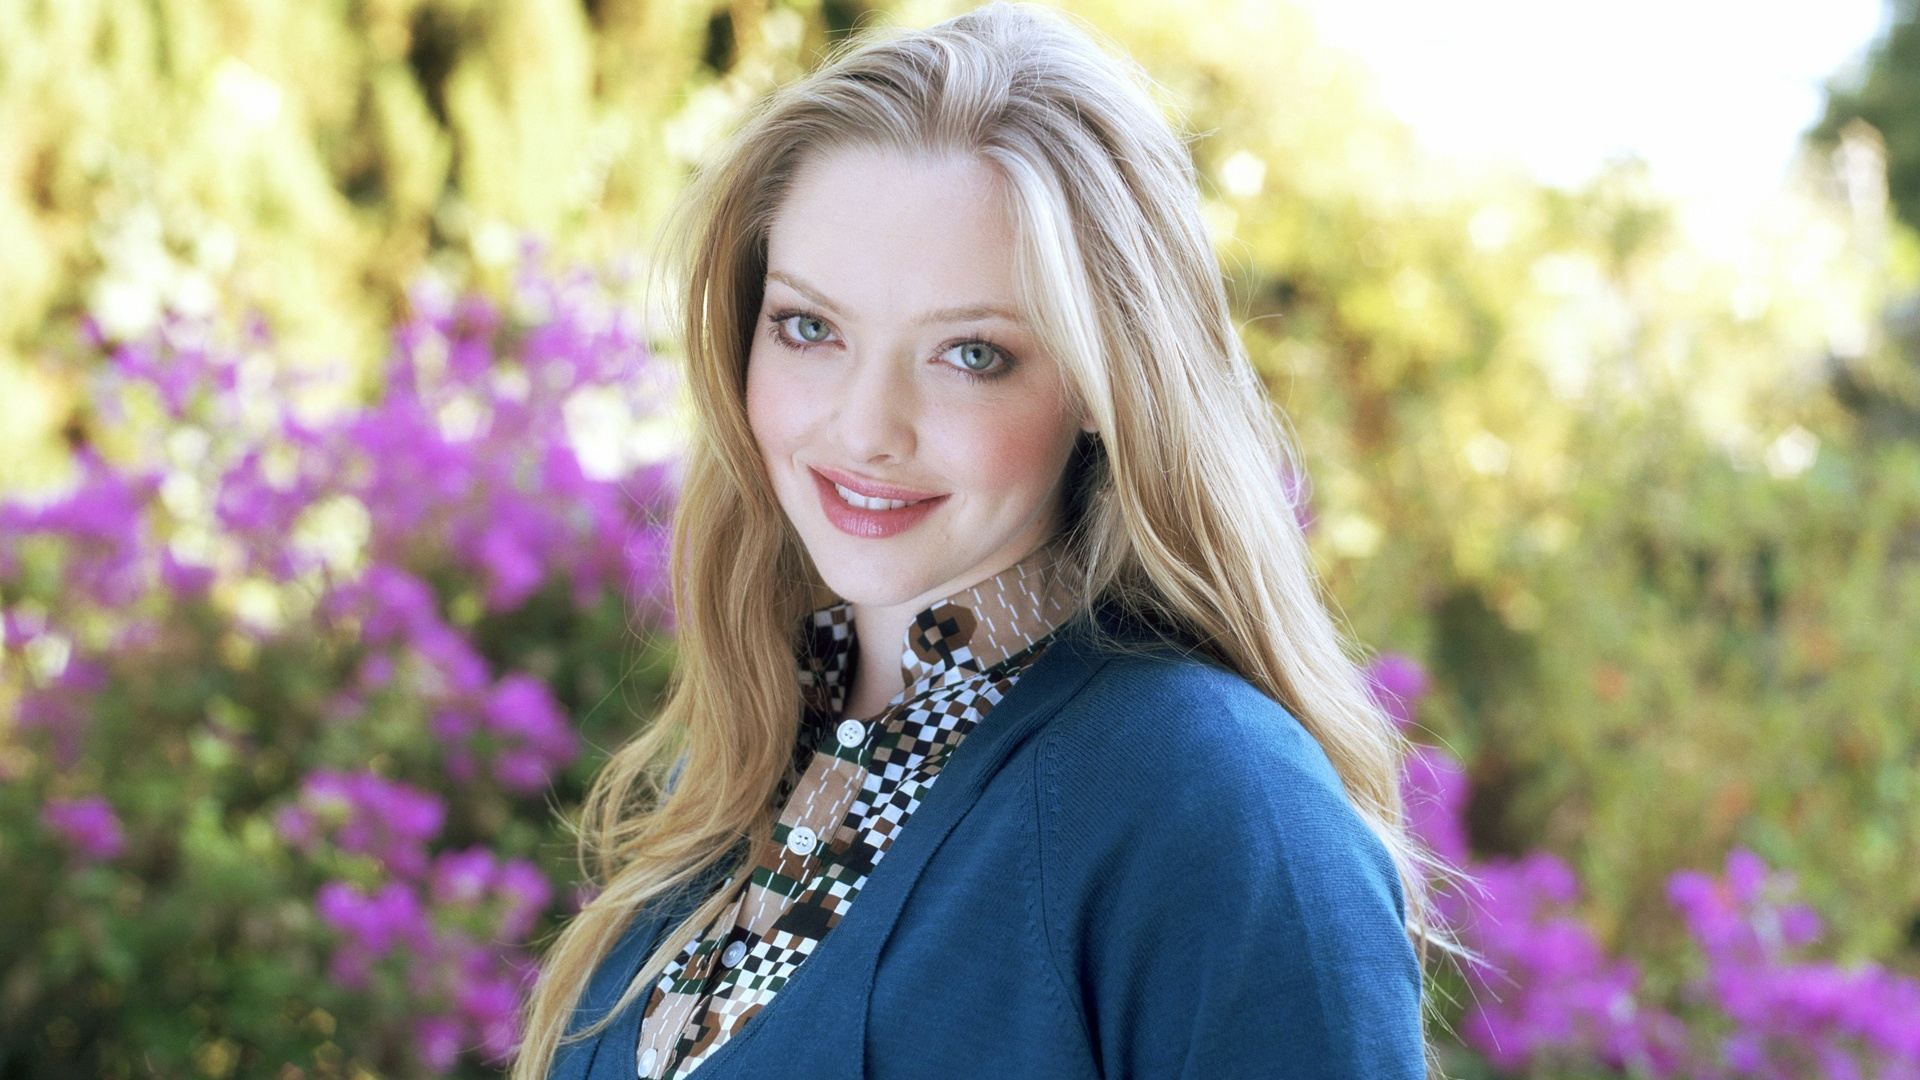 cute amanda seyfried beauty look free hd mobile download images